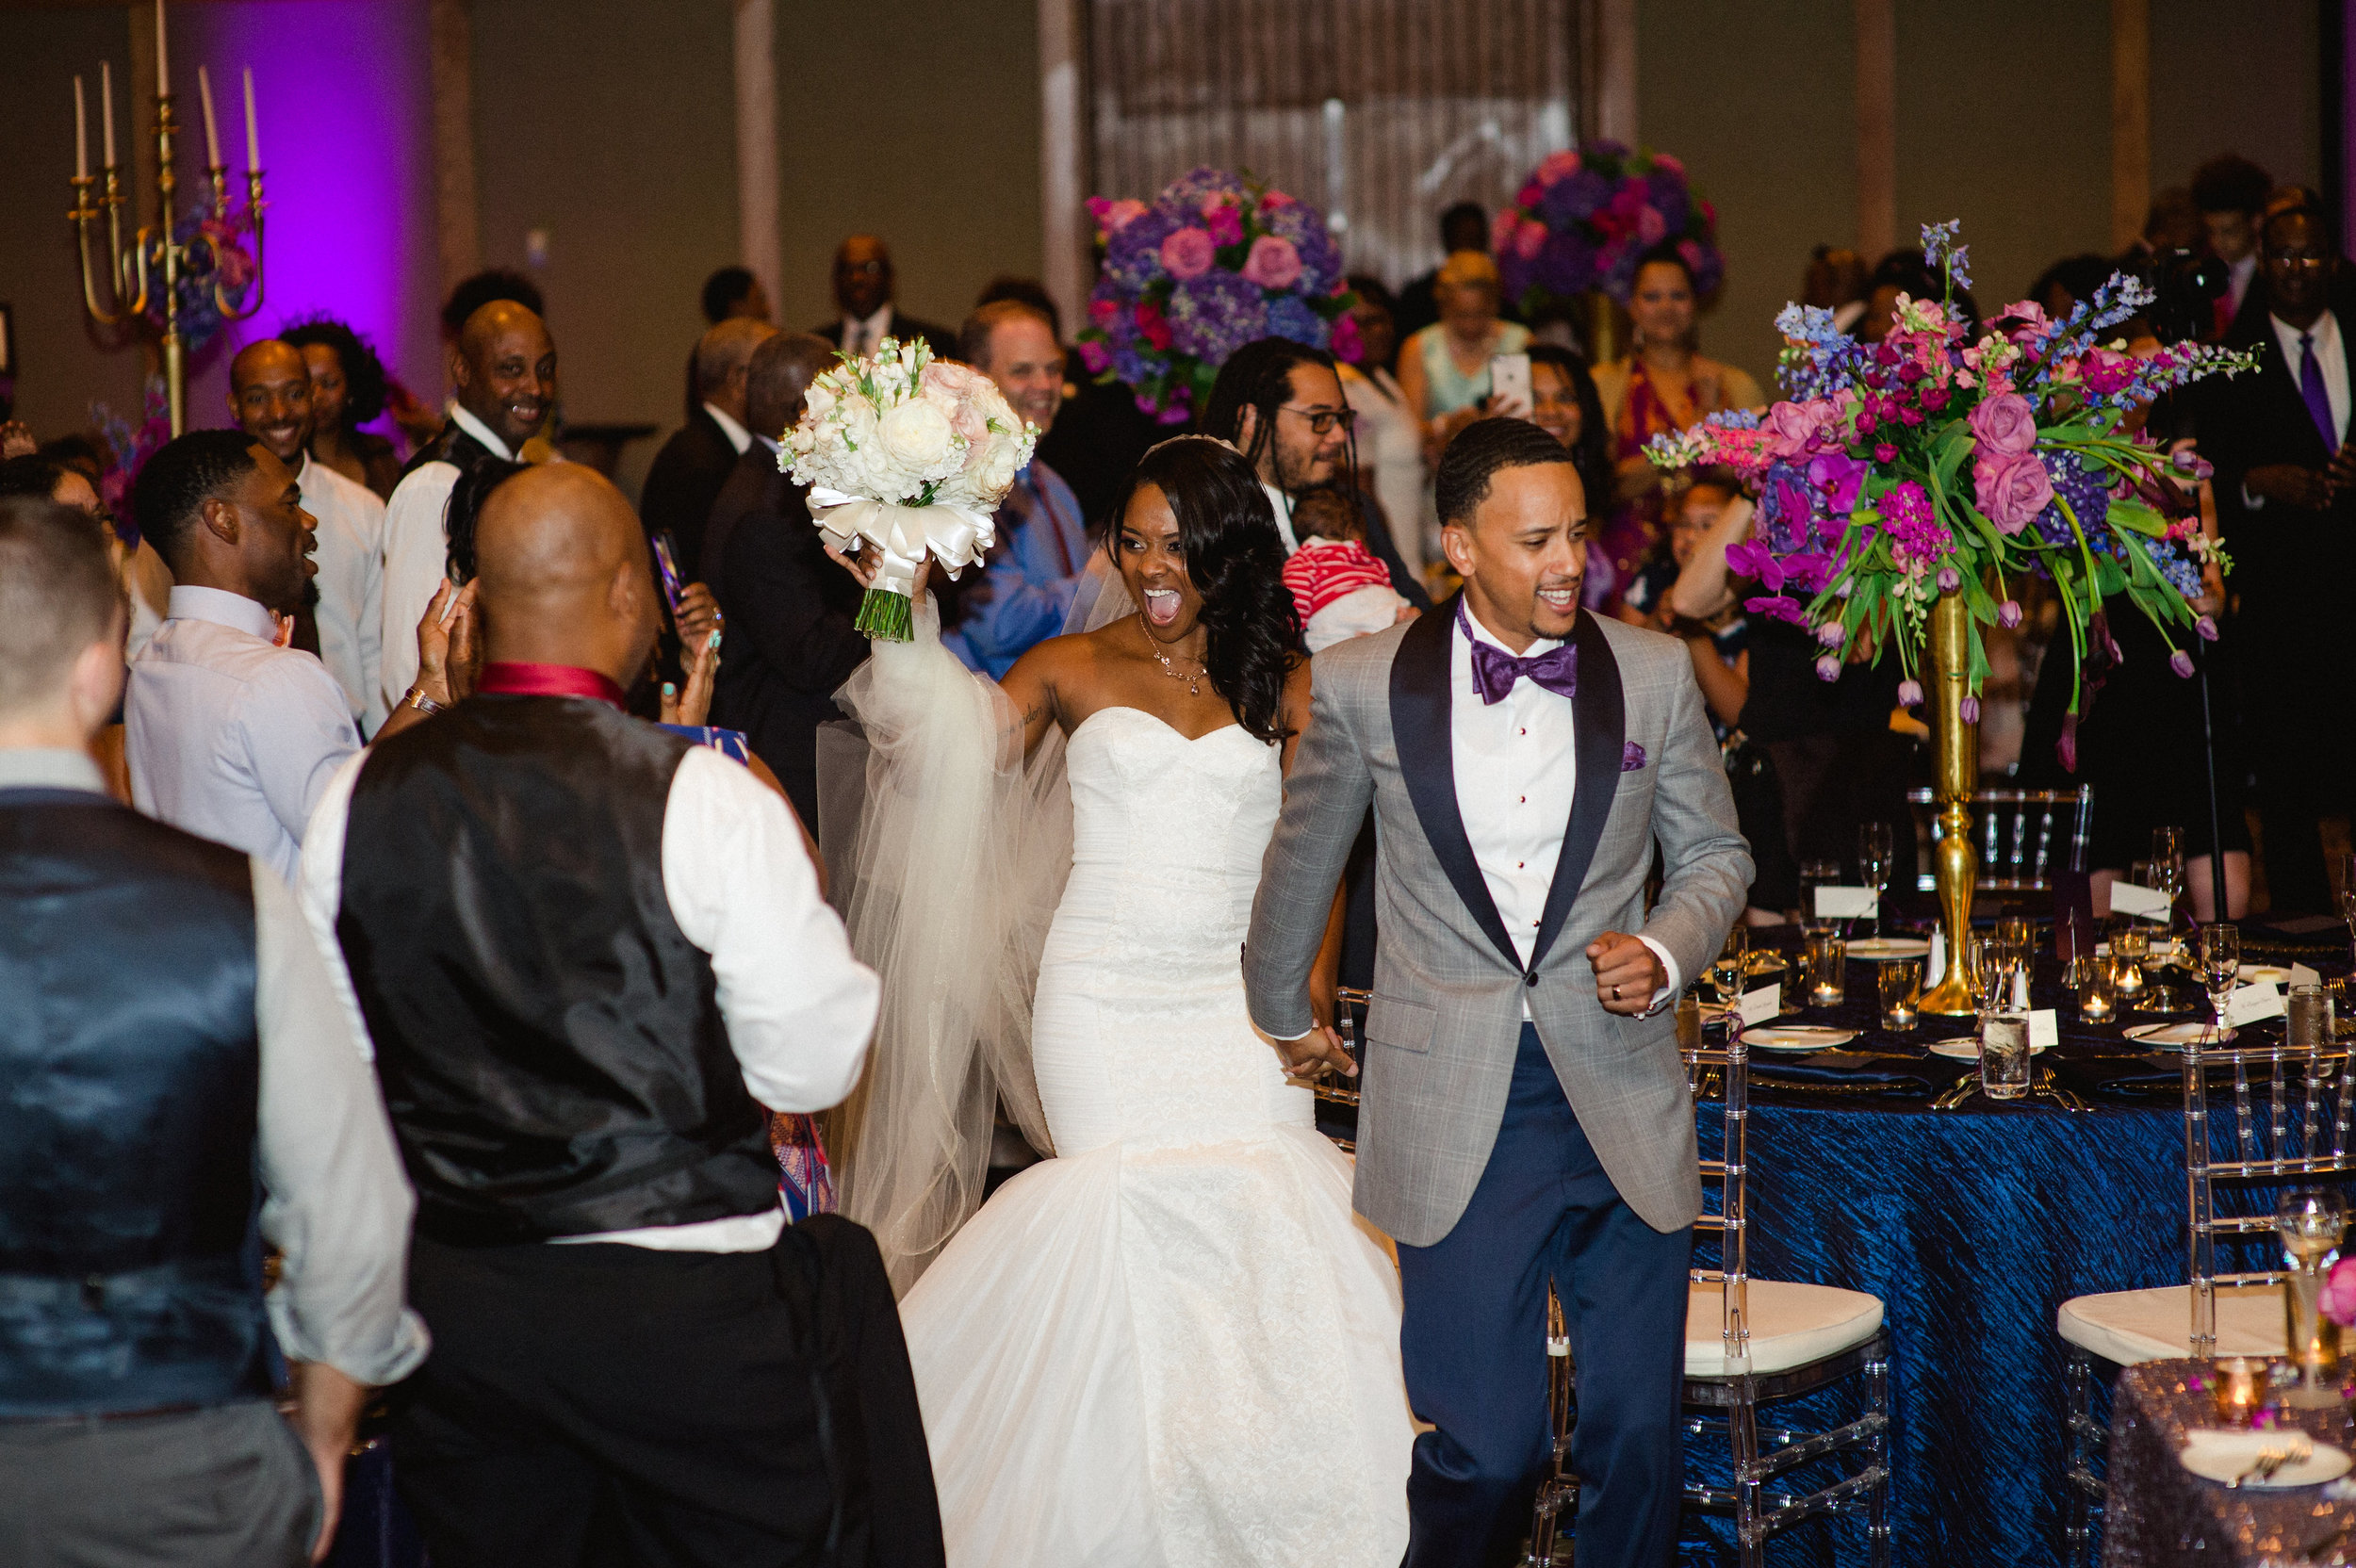 imani&chris|wedding|reception-32.jpg